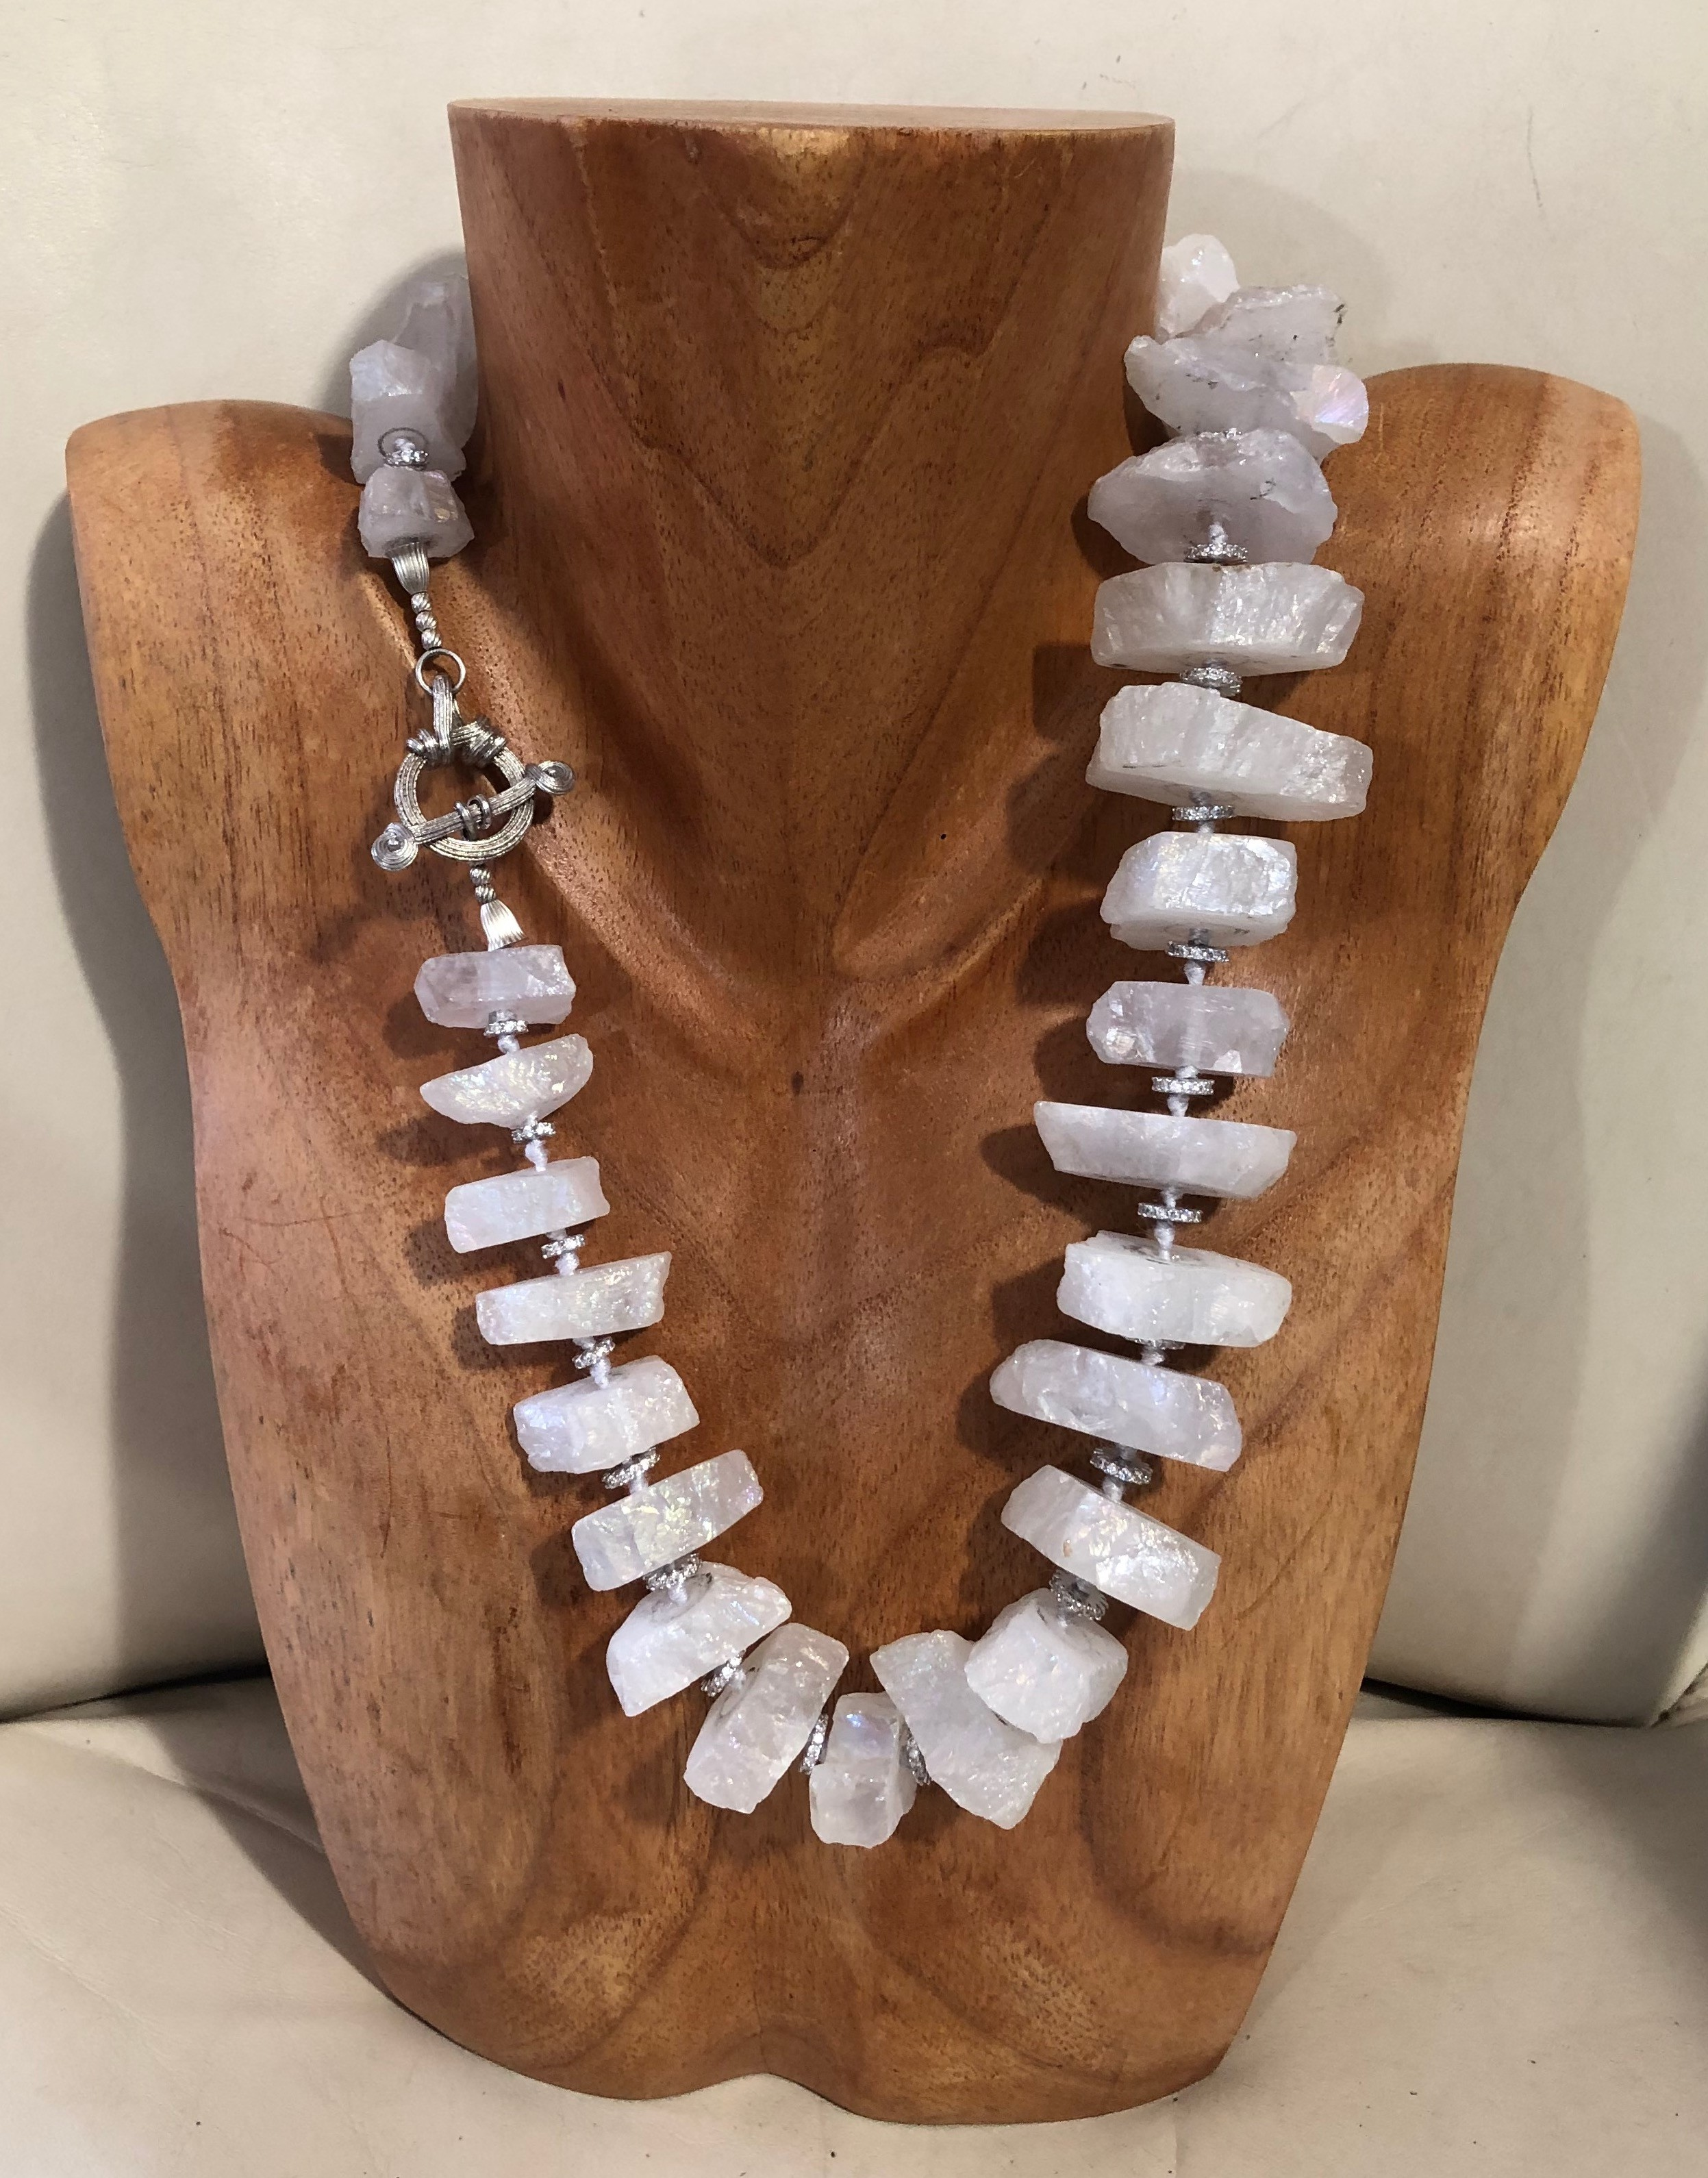 Roulelated Chrystal Necklace